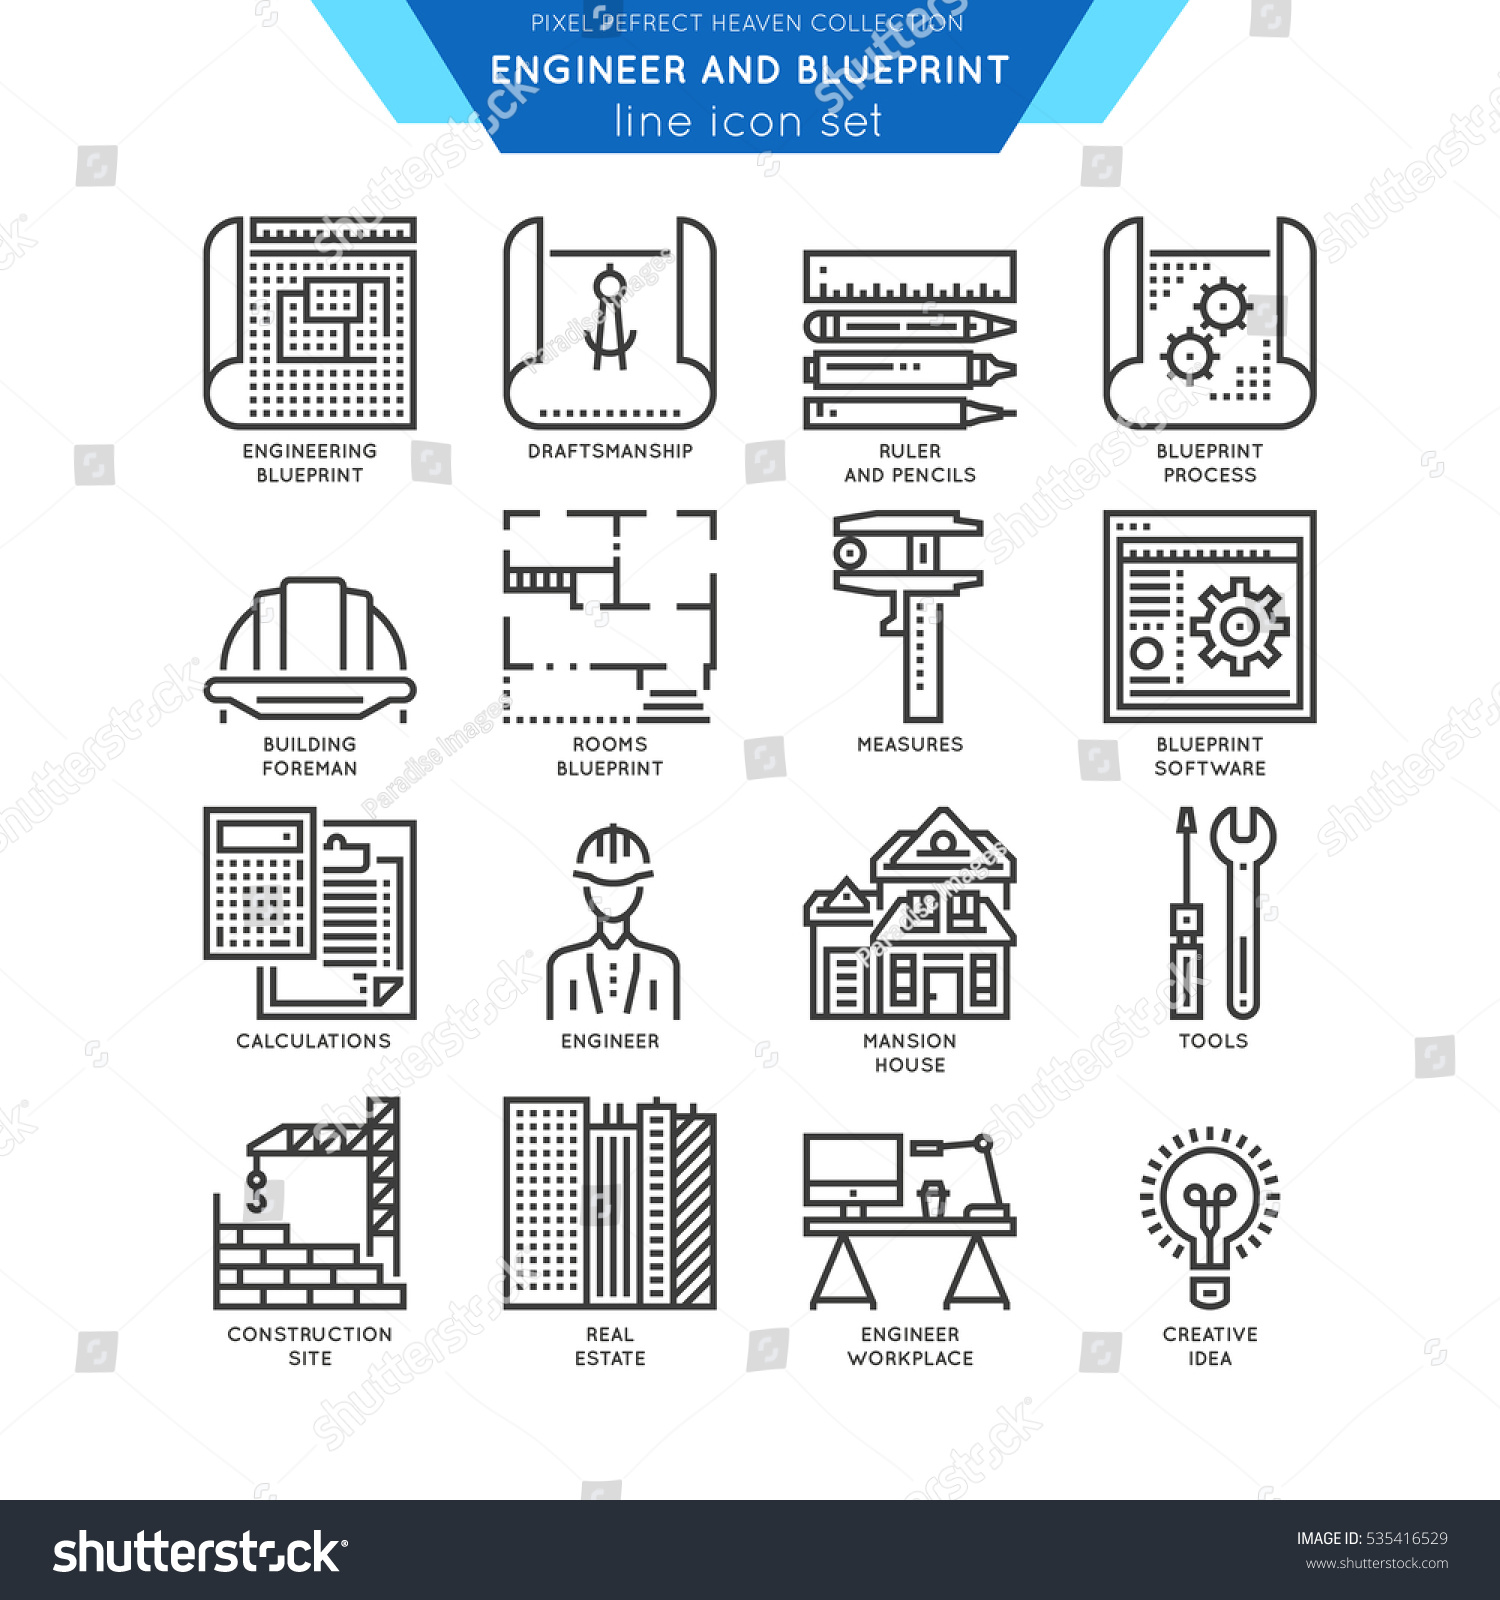 Blueprint And Engineer Line Icon Set  Draftmanship  Tools For Engineering   Software And Workplace. Blueprint Engineer Line Icon Set Draftmanship Stock Vector